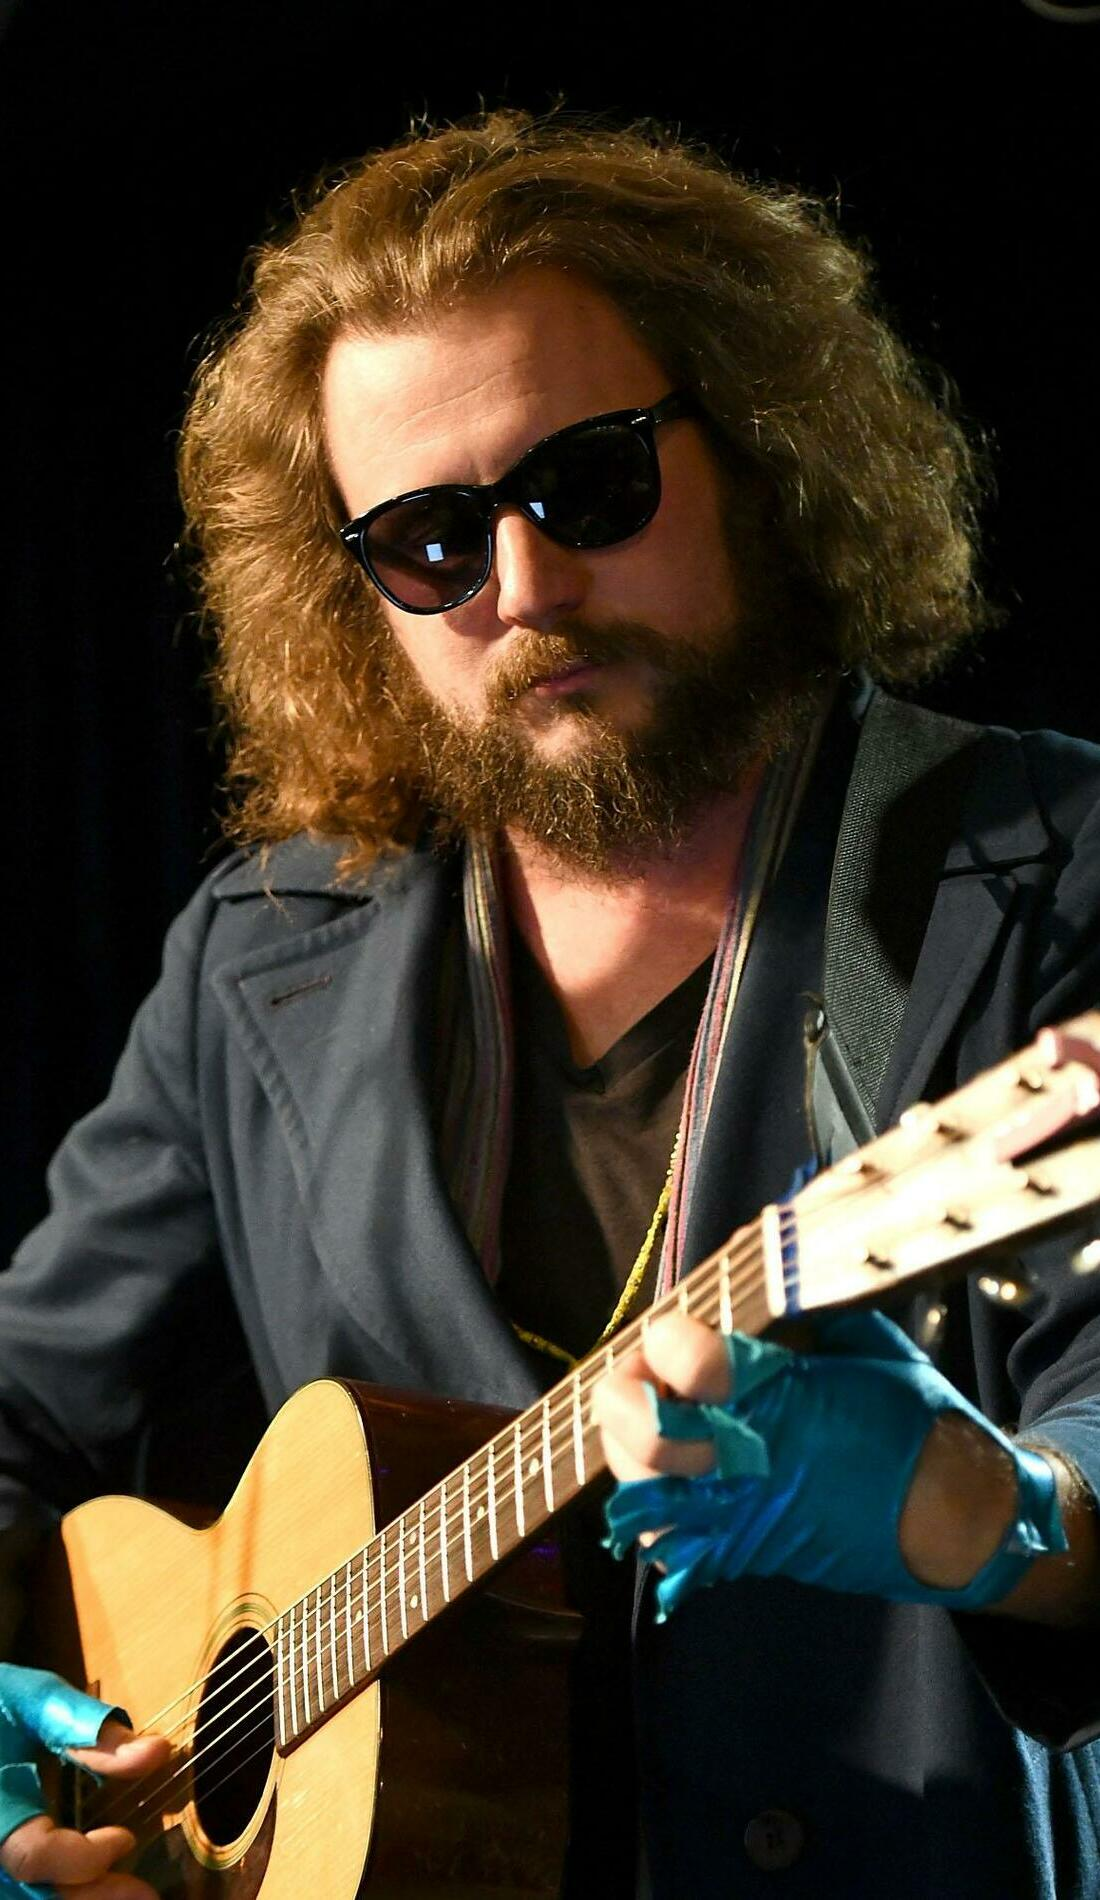 A My Morning Jacket live event